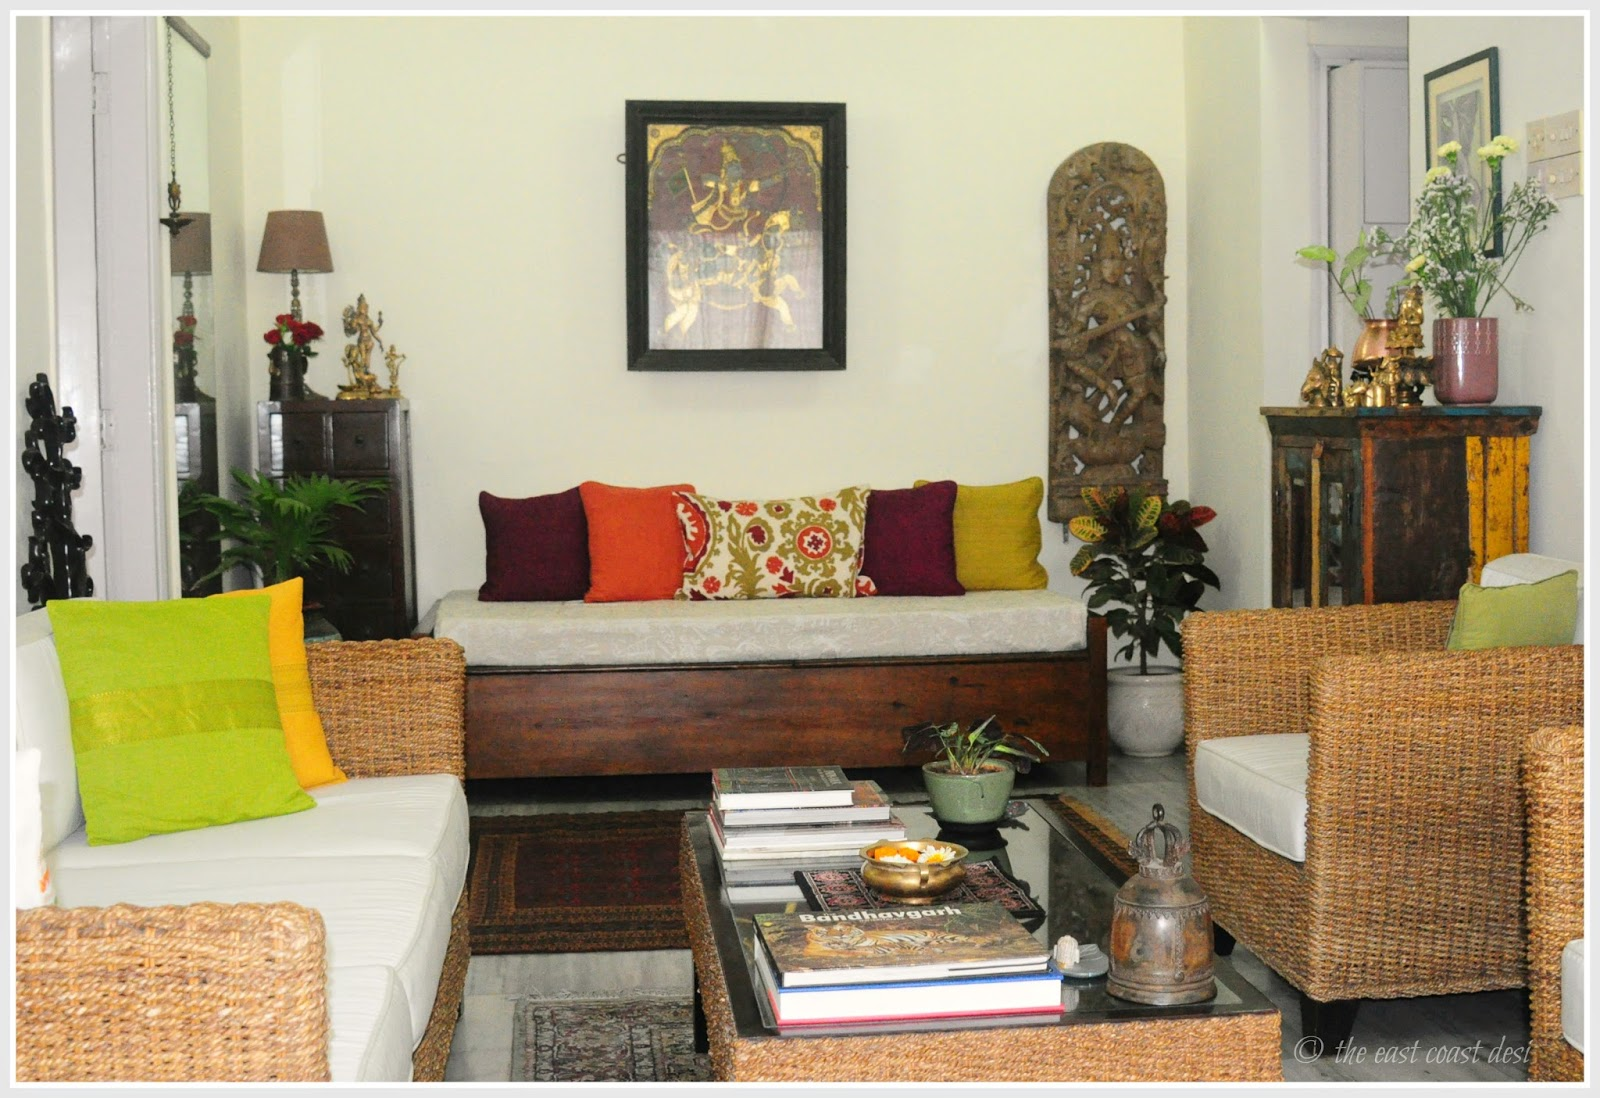 The east coast desi an aesthete 39 s paradise home tour for Indian foyer decorations